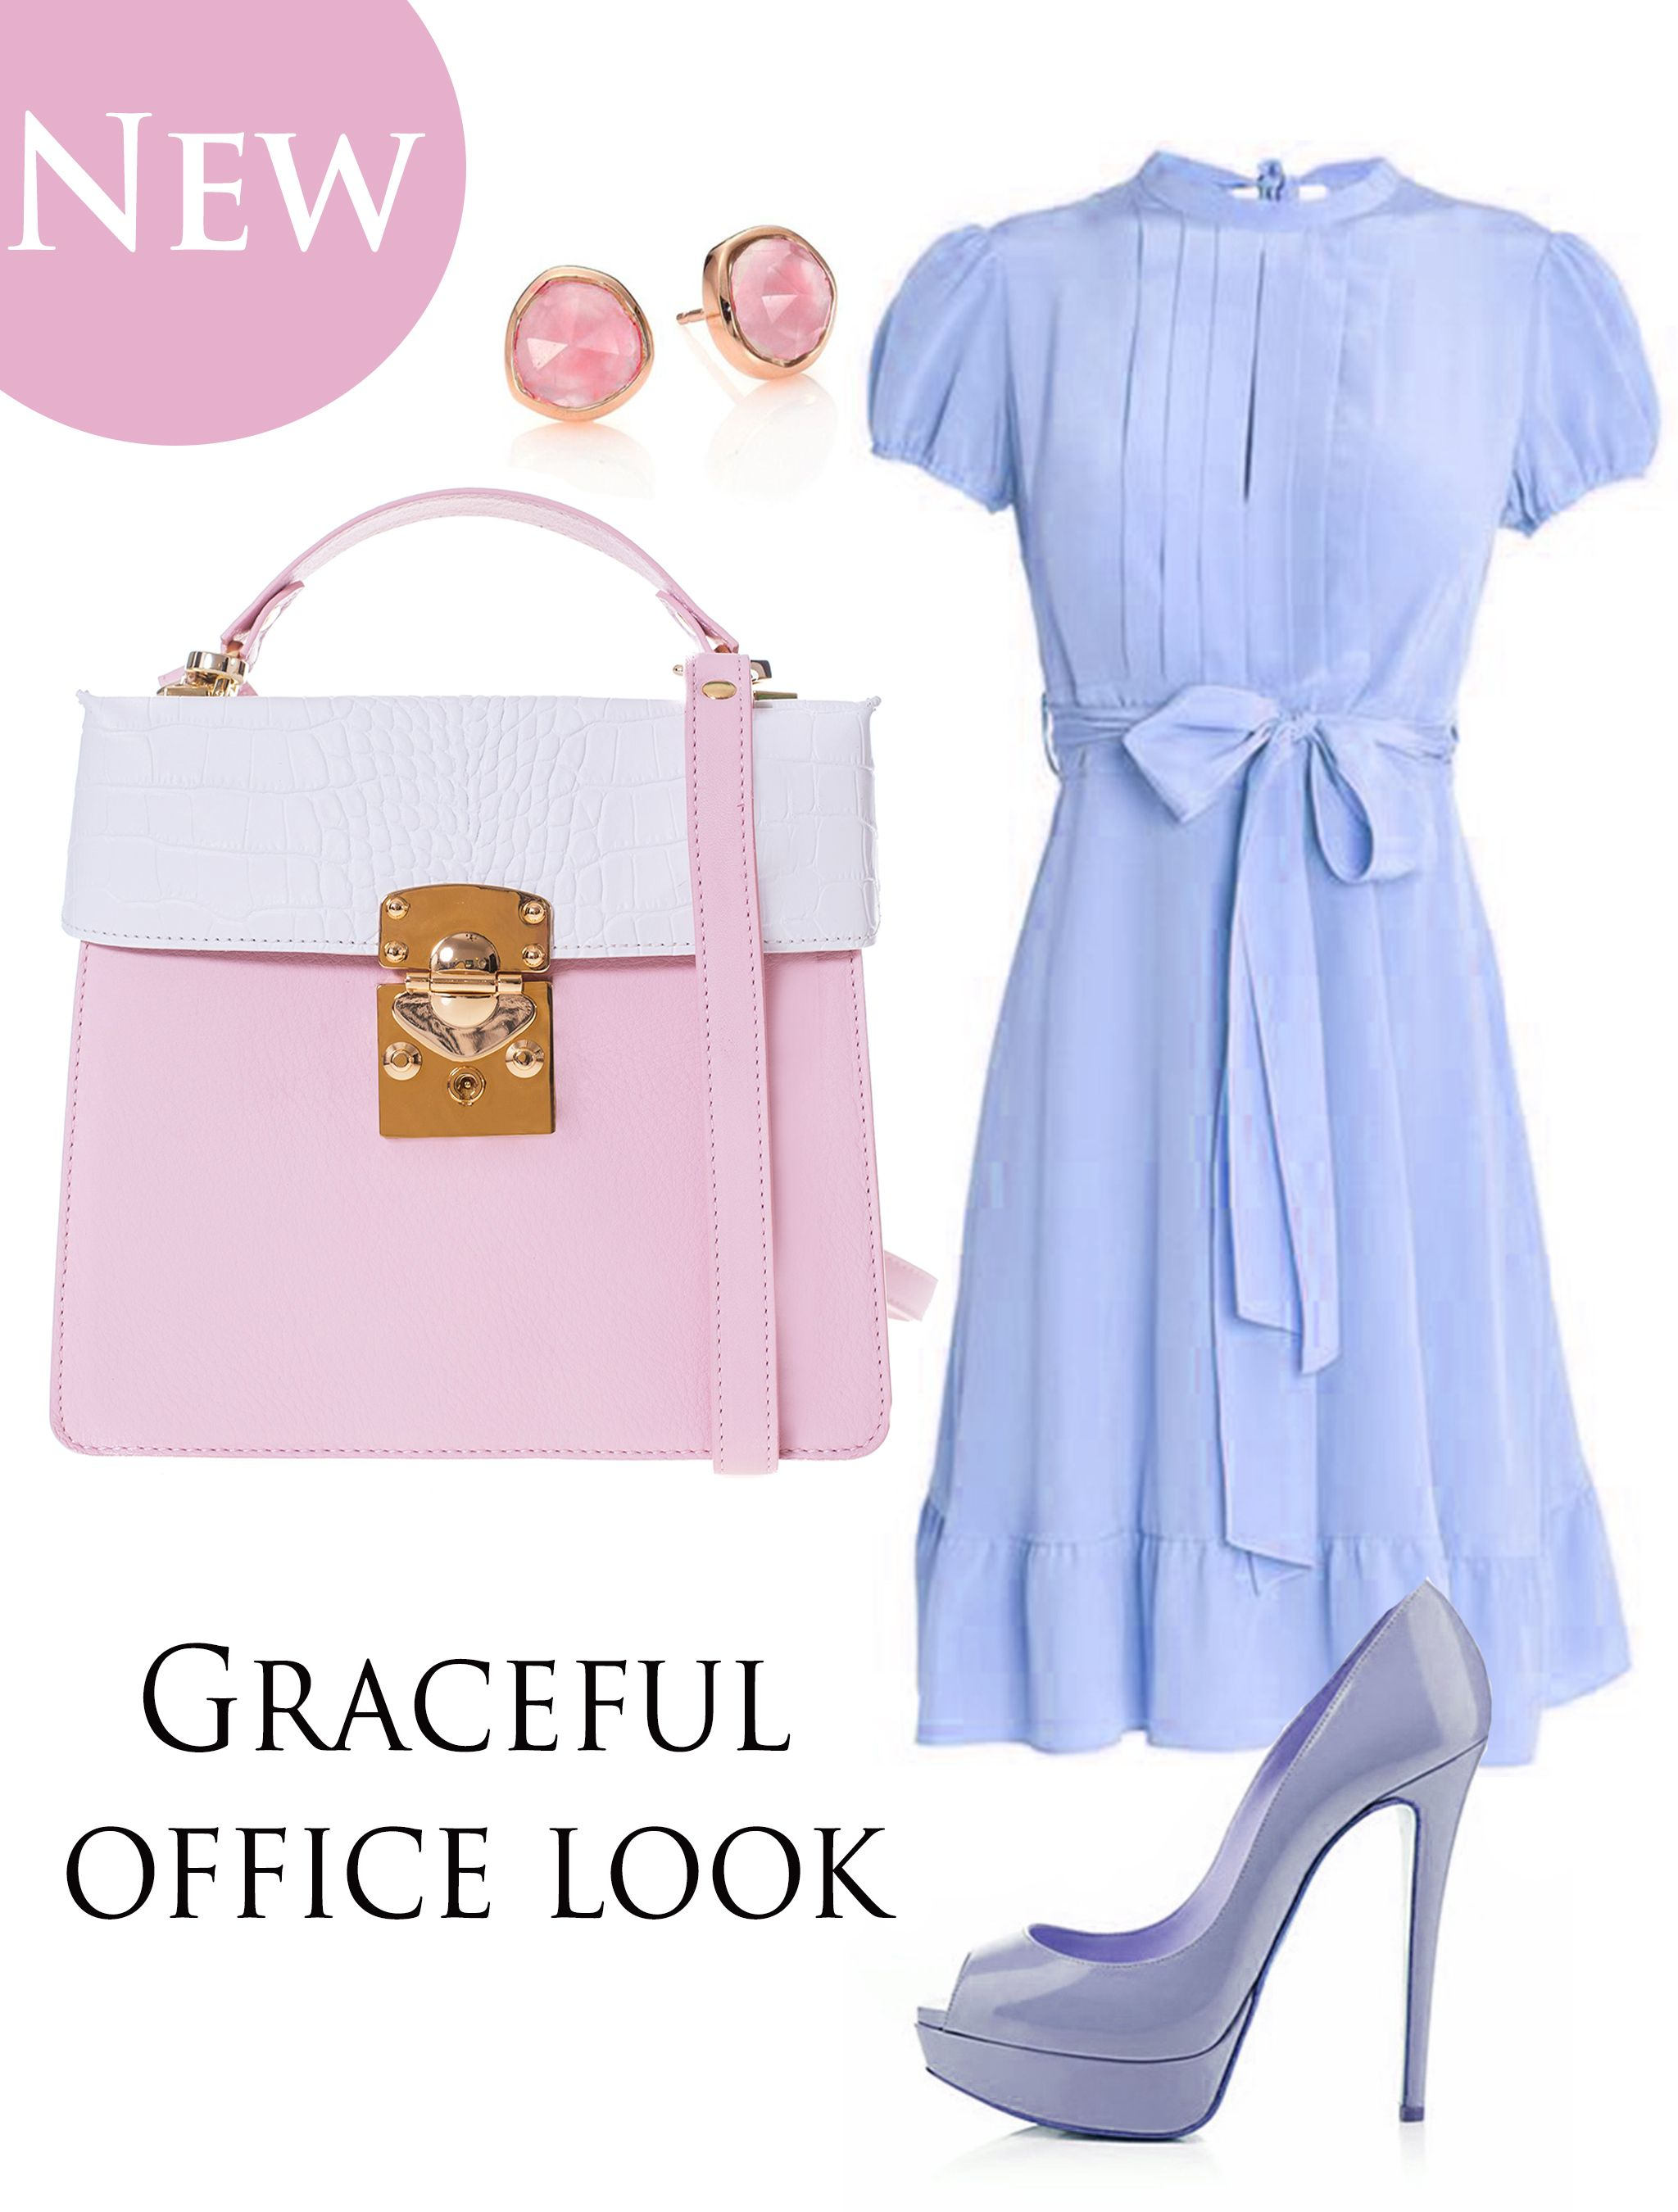 The new Amanda bag' s sweet pastel shades delicately blend with your feminine dress so as to create a perfect chromatic harmony. Pair it with high heels and you'll get an impressive seductive look and an imposing air at work.